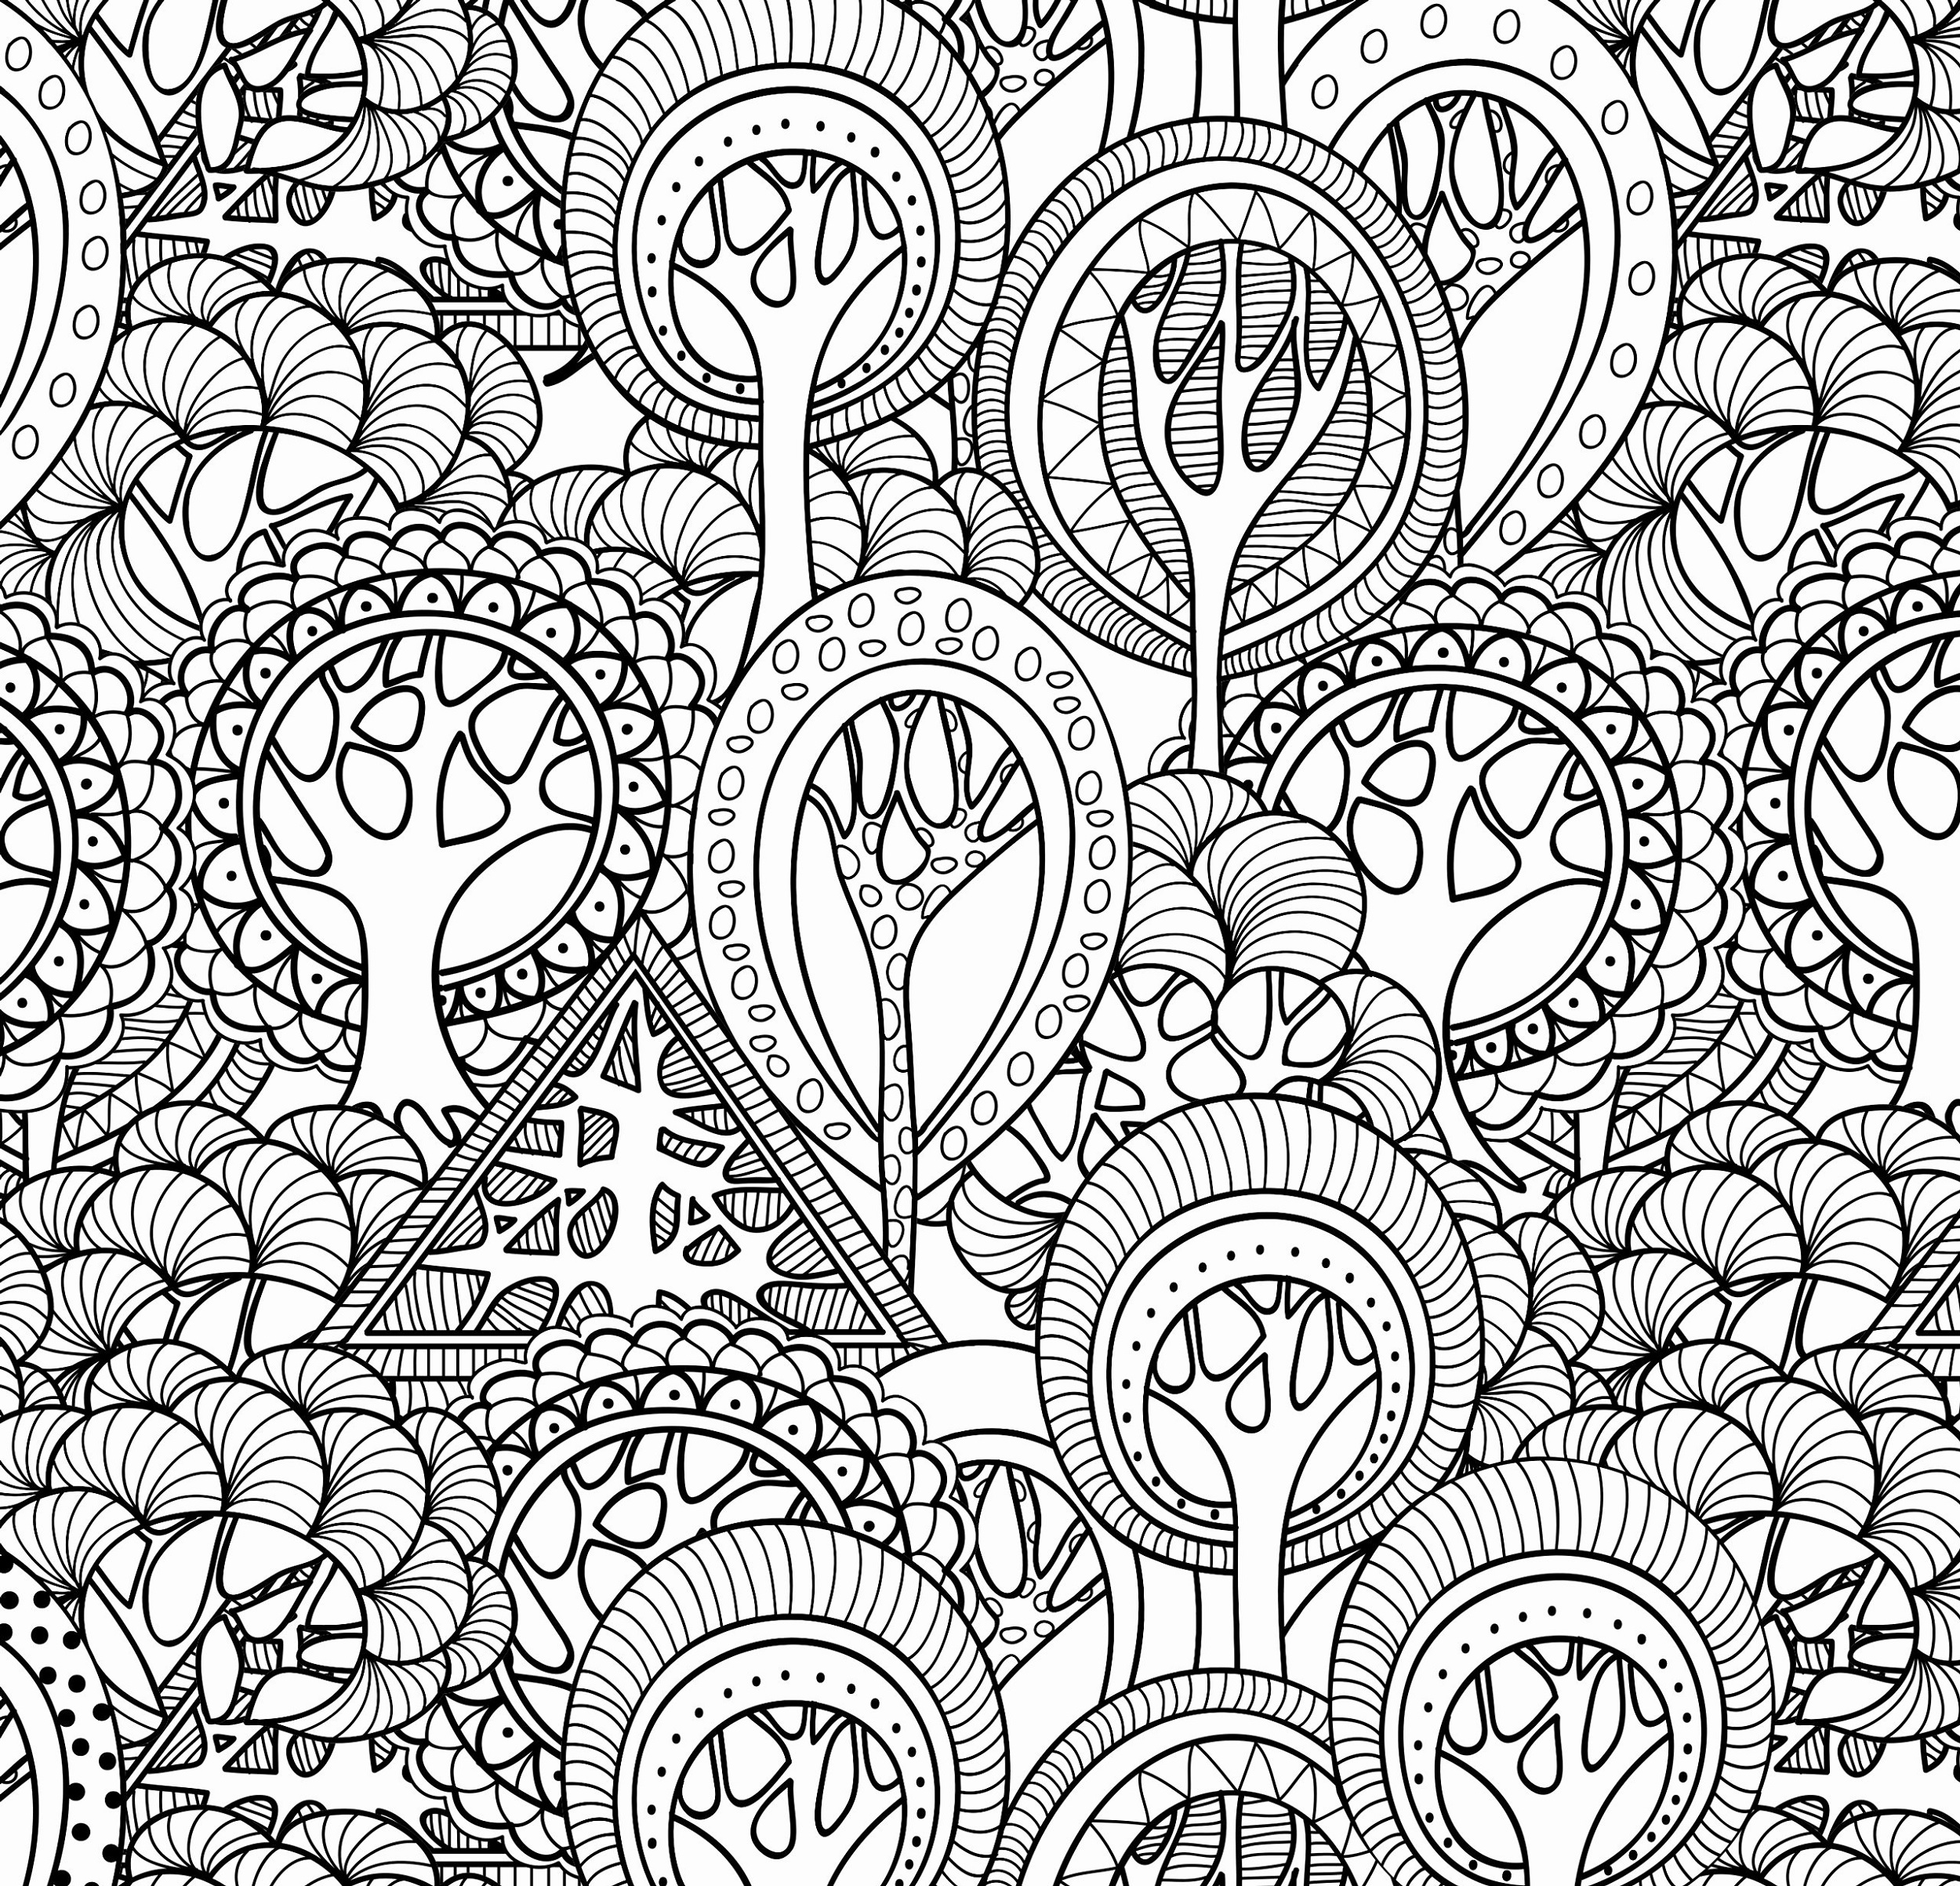 Coloring-Games-For-Adults-Pattern